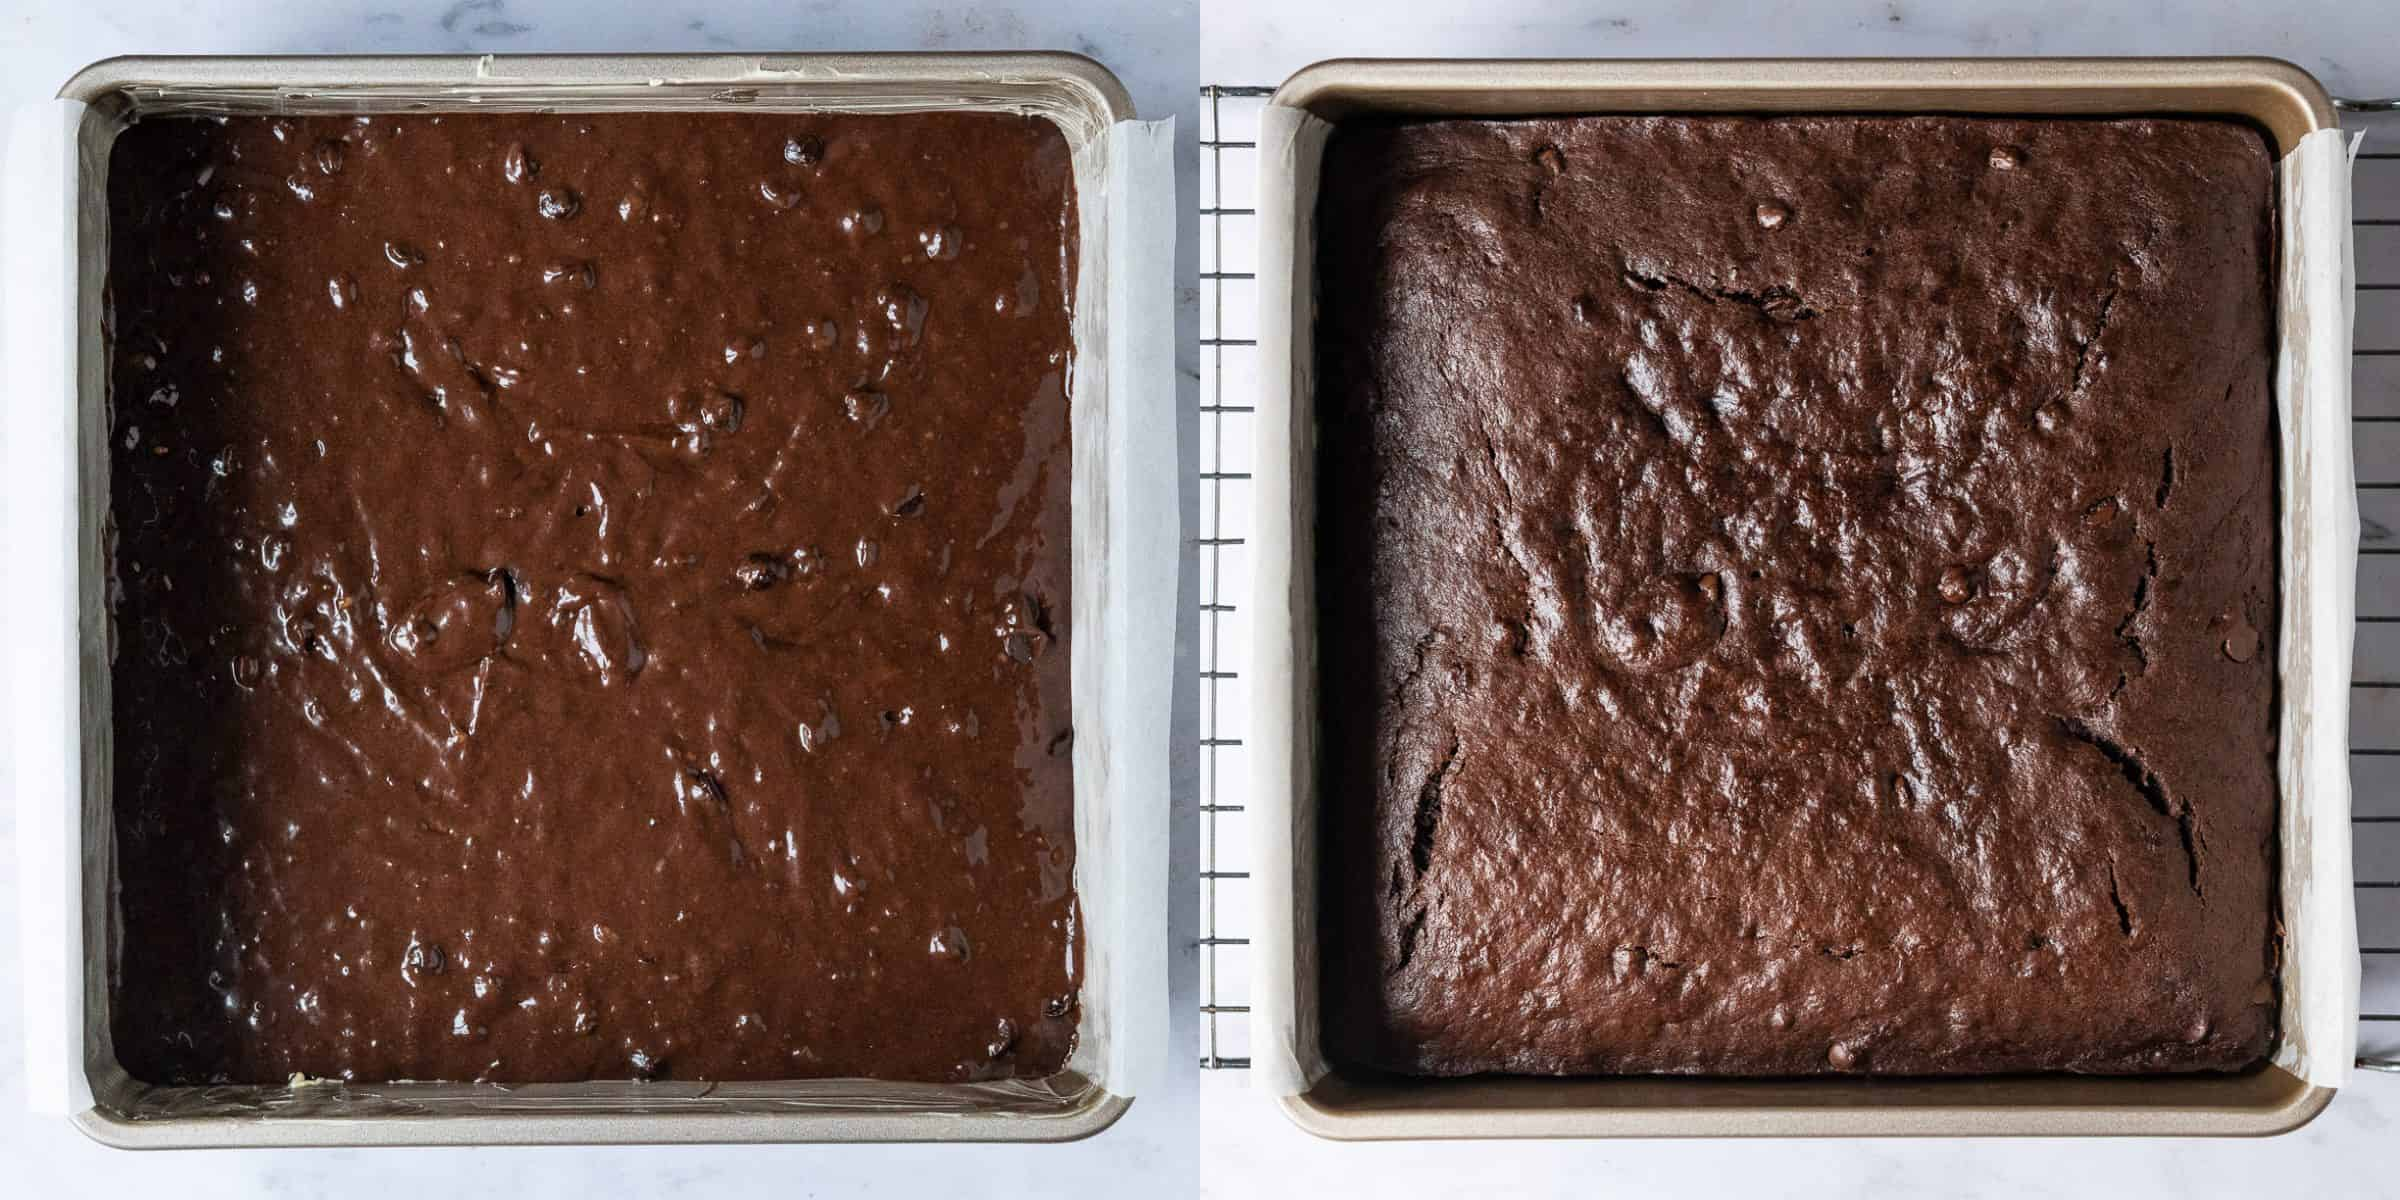 Step 3 - a two image collage of adding the batter to the tin and the baked cake.